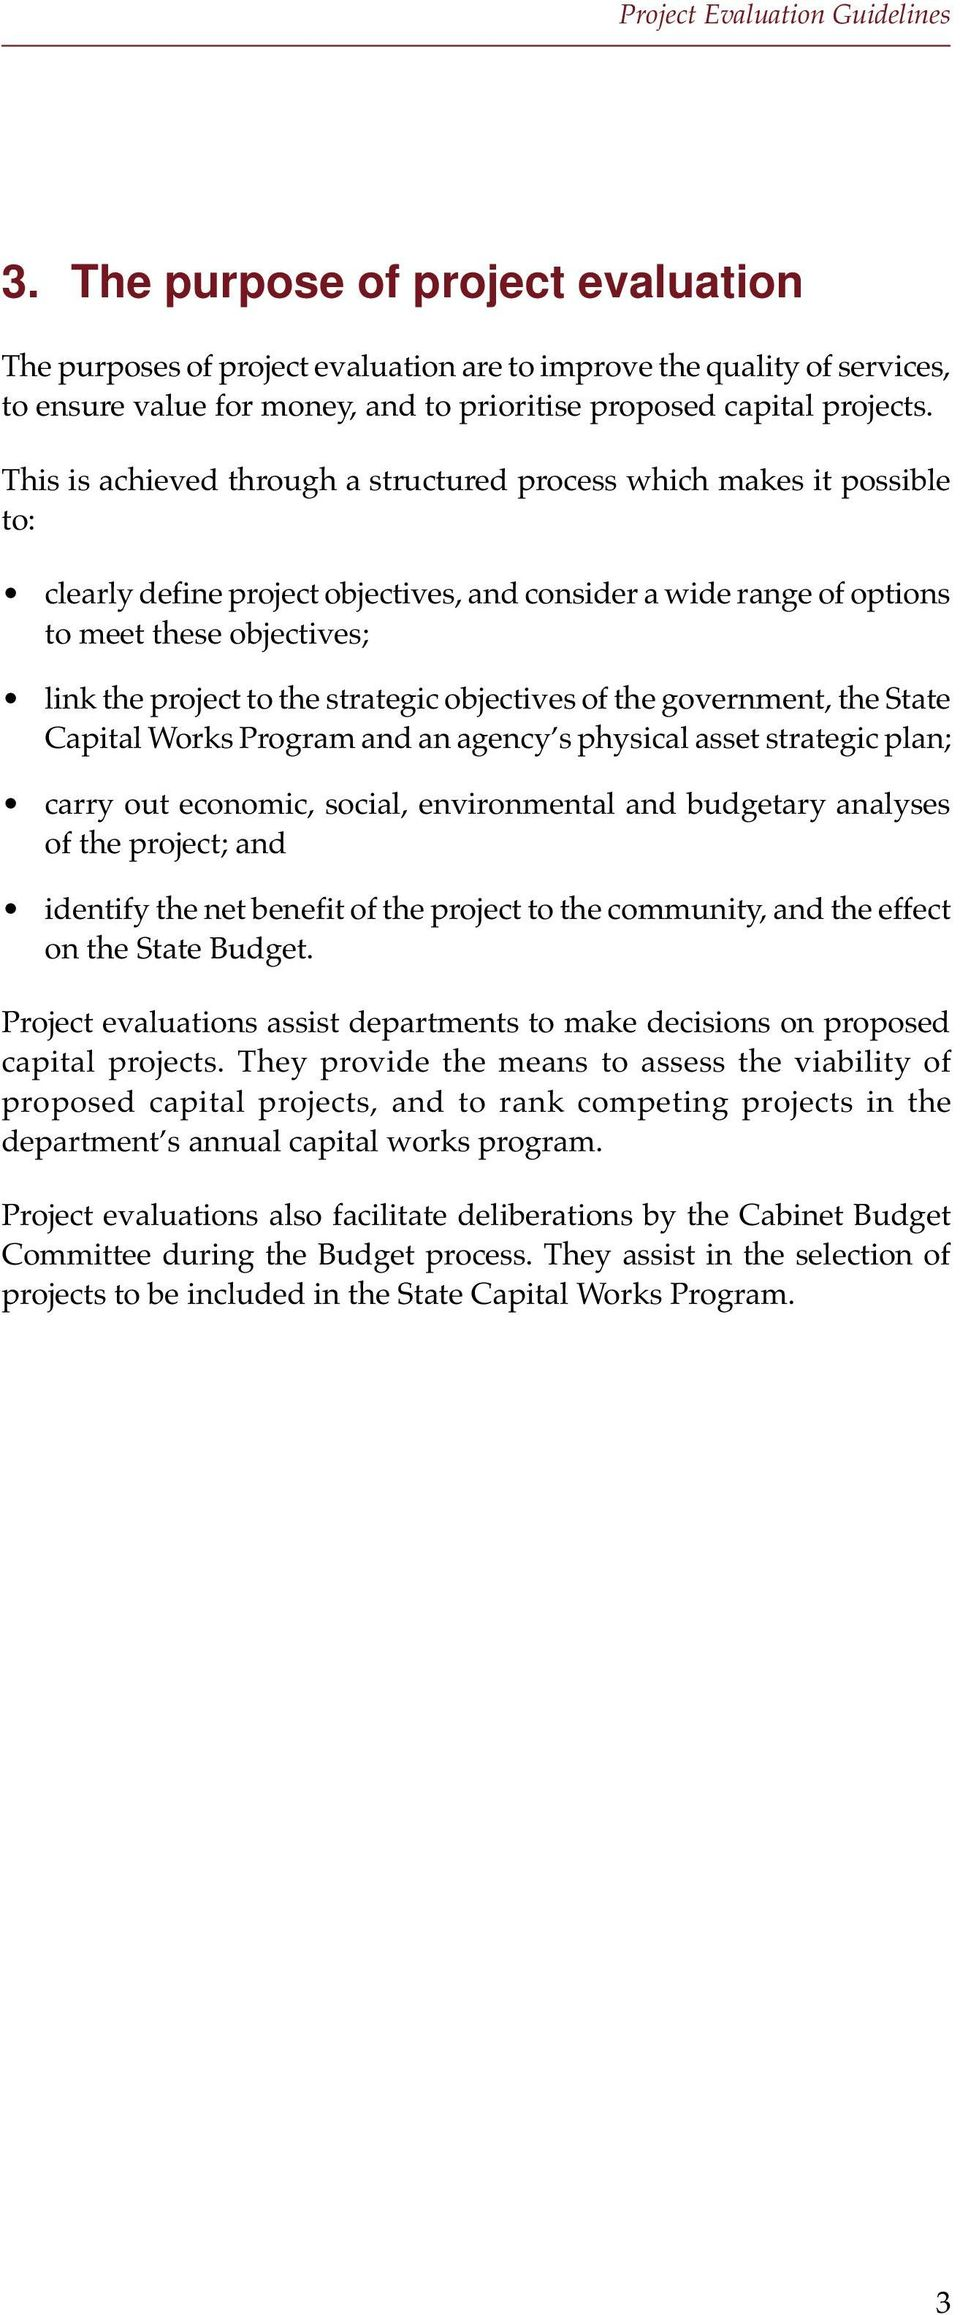 strategic objectives of the government, the State Capital Works Program and an agency s physical asset strategic plan; carry out economic, social, environmental and budgetary analyses of the project;